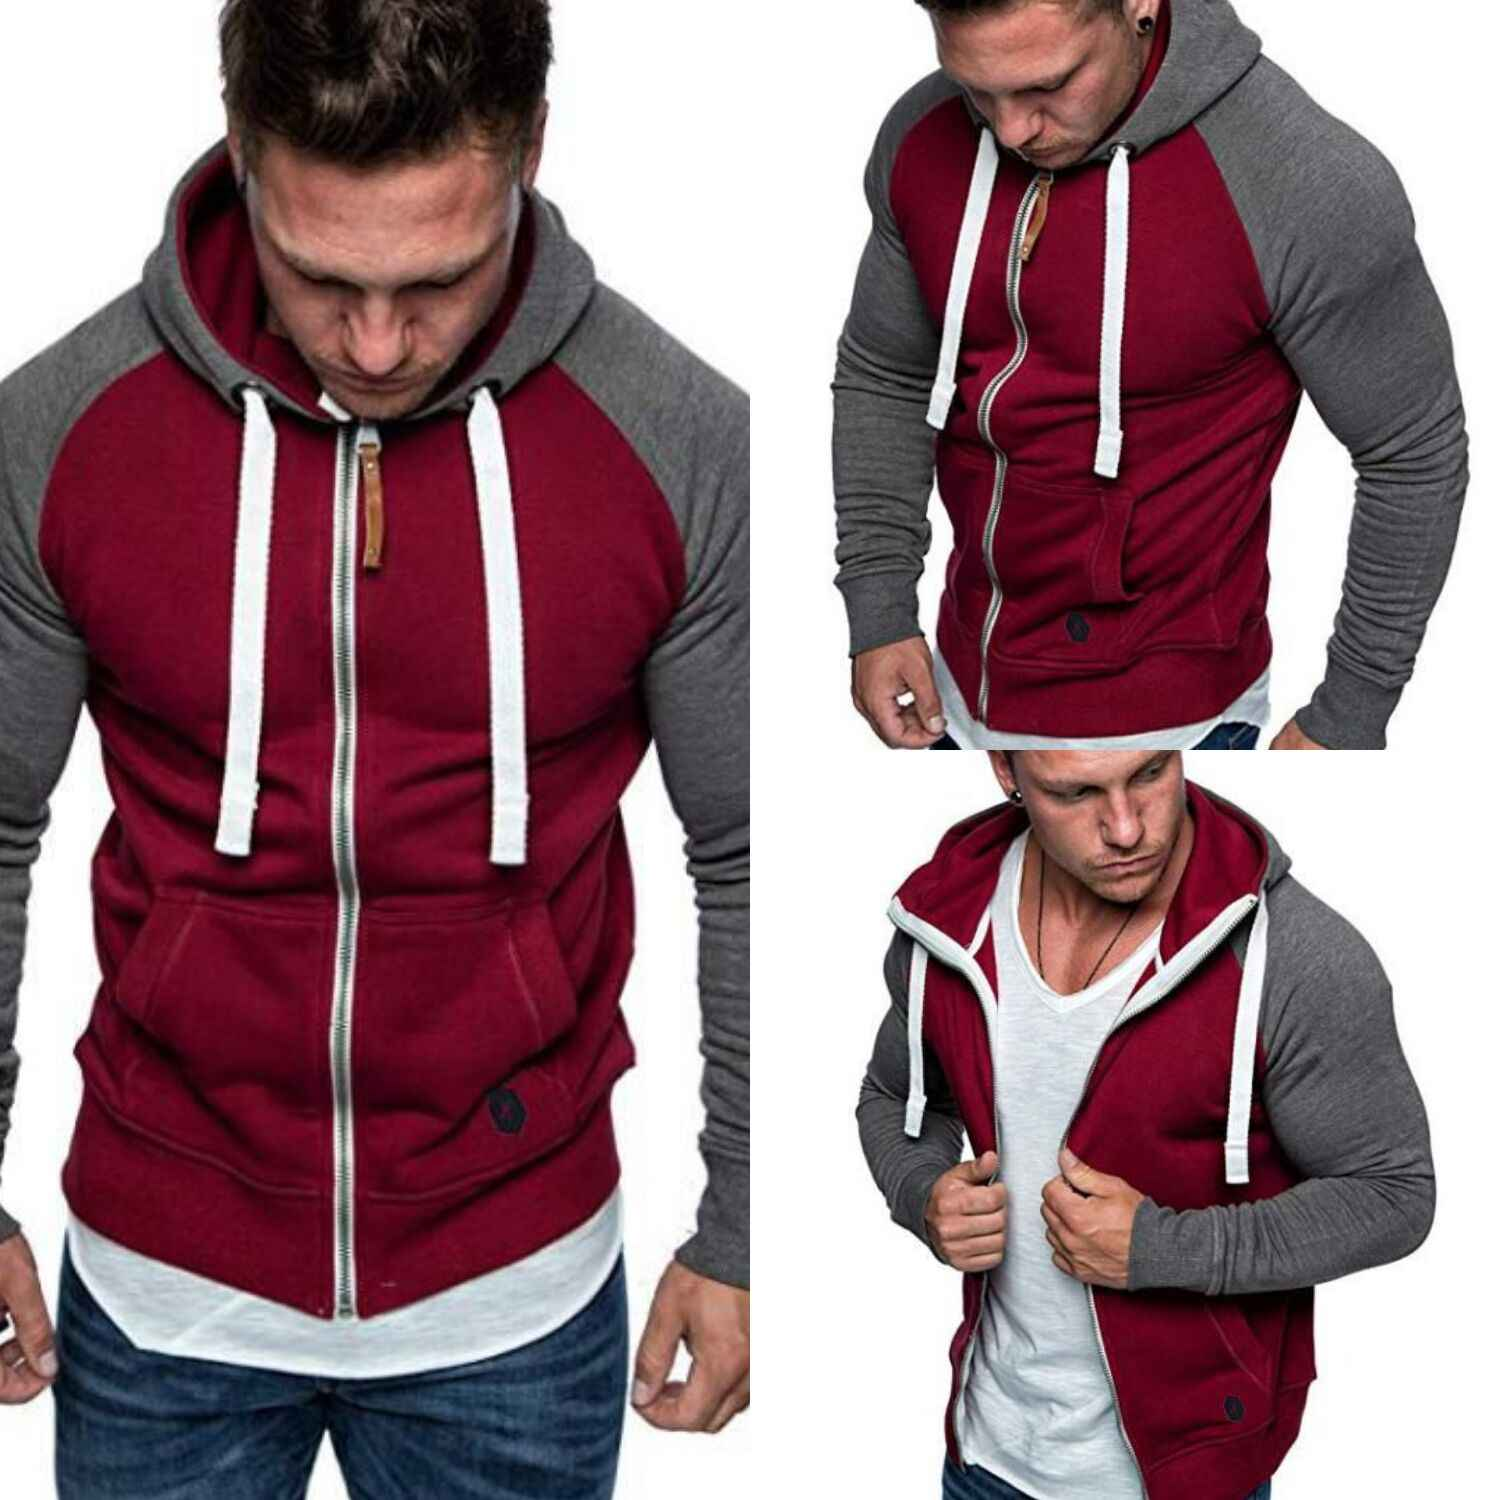 Herfst Winter Fleece Hoodies Mannen Sweatshirts Rits Fitness Hoody Jassen Voor Mannen Vesten Plus Size 3XL